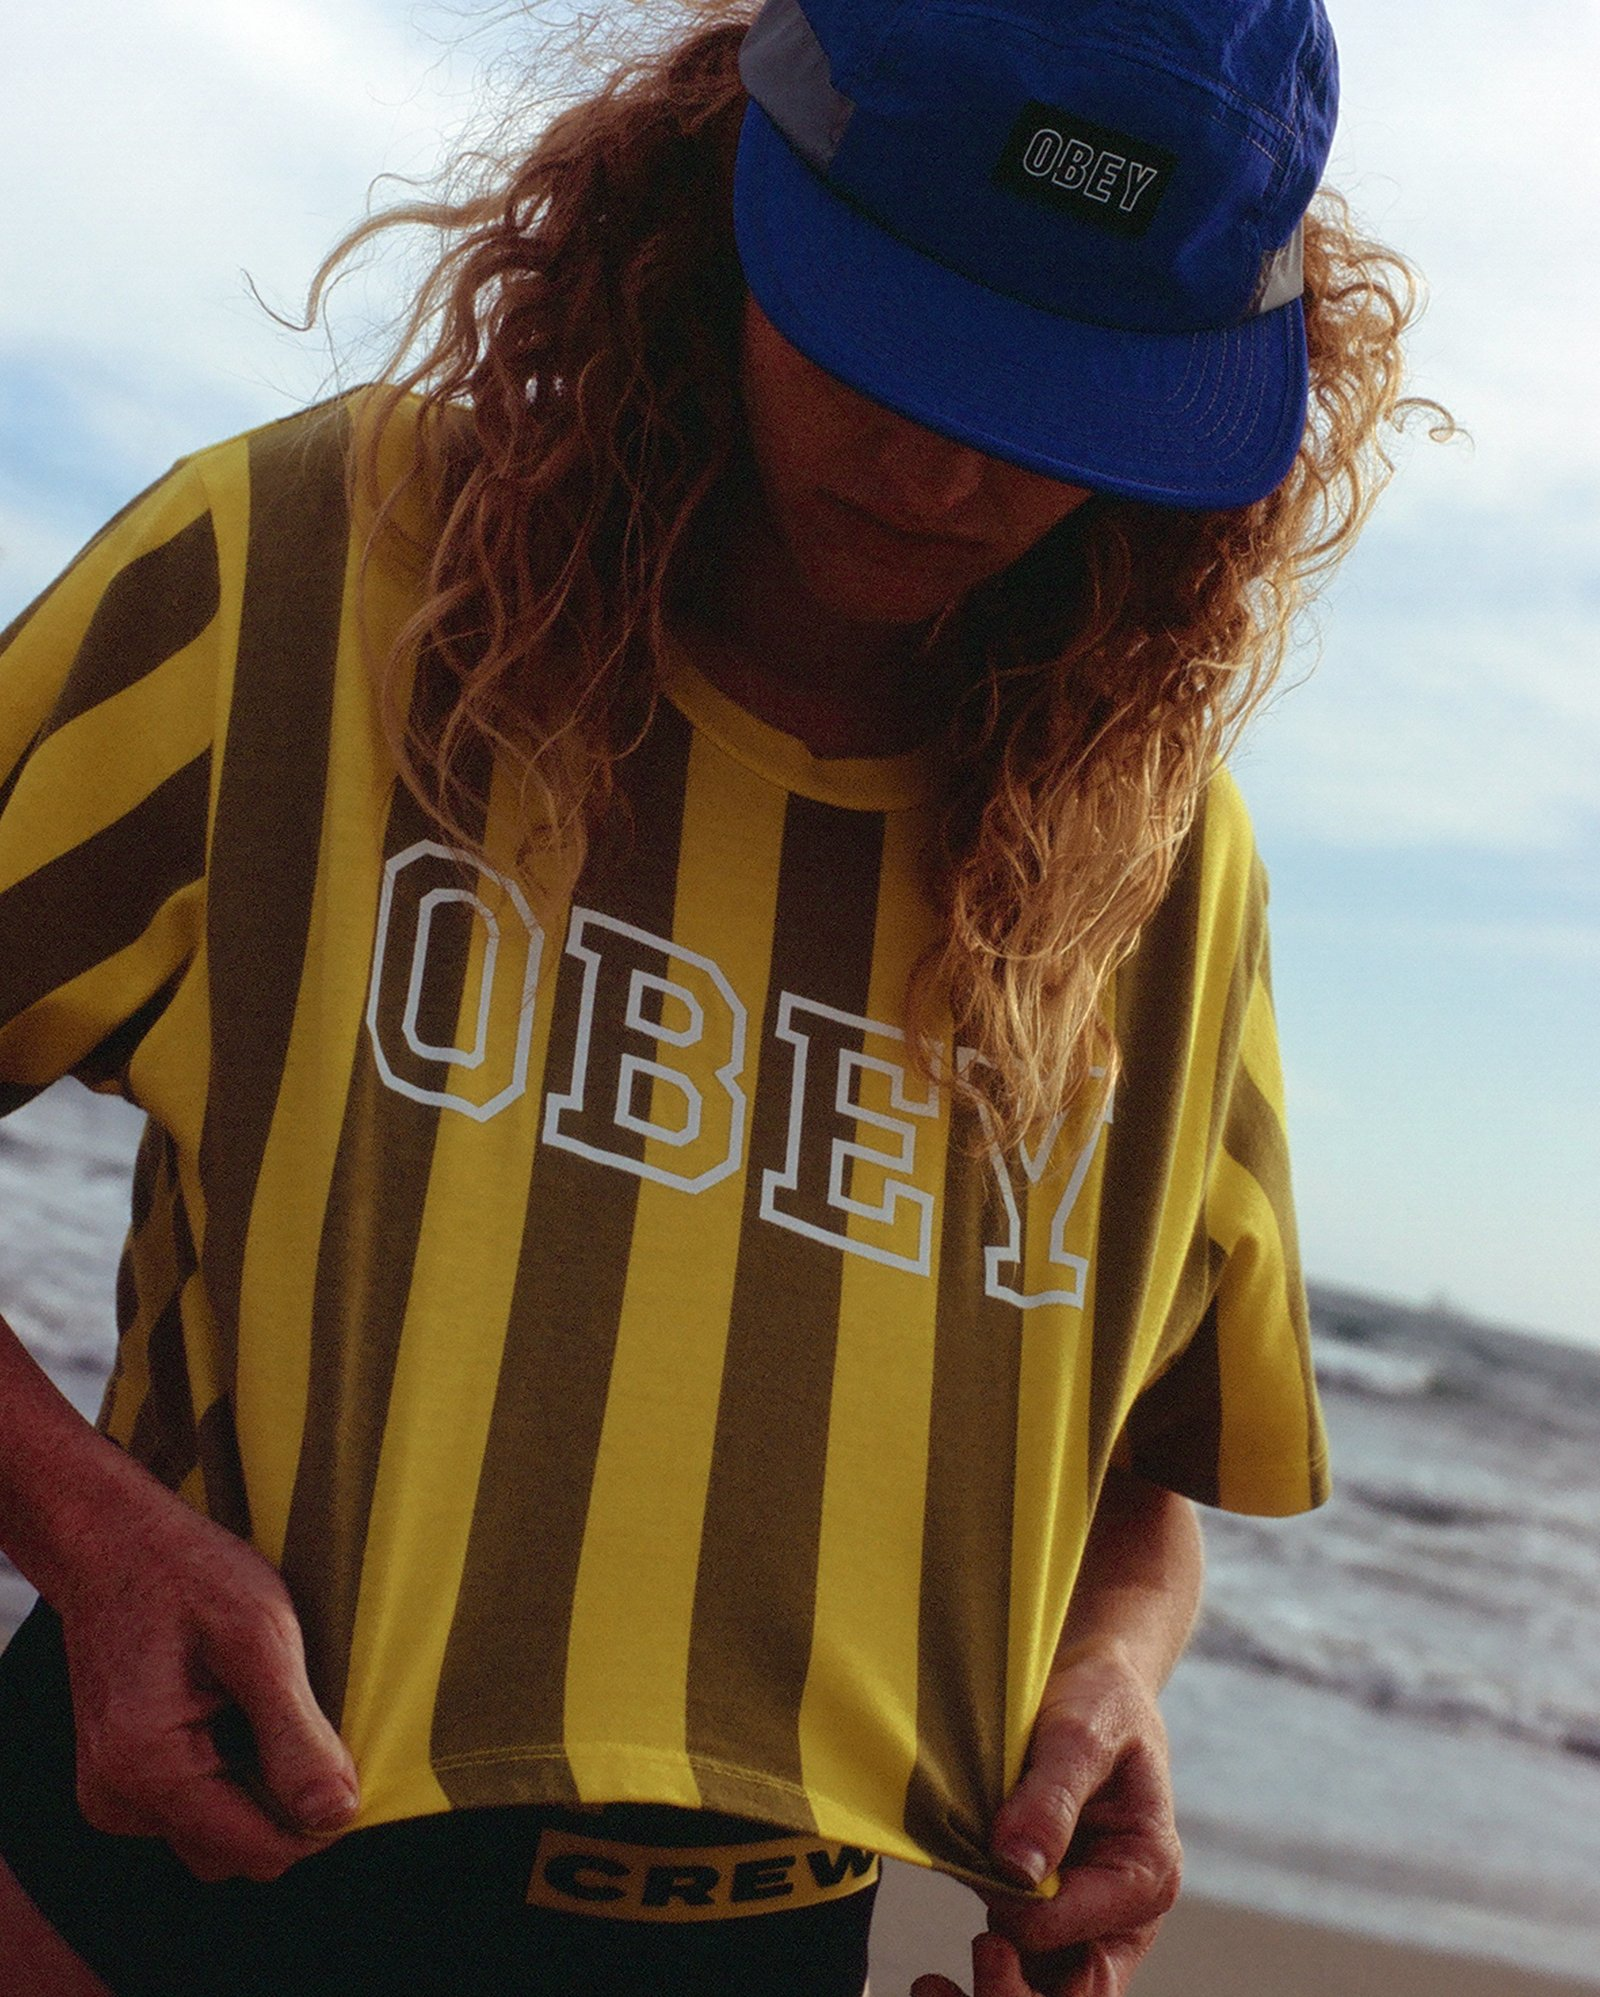 96a5b3871 OBEYCLOTHING.CO.UK | Men's and Women's OBEY Clothing